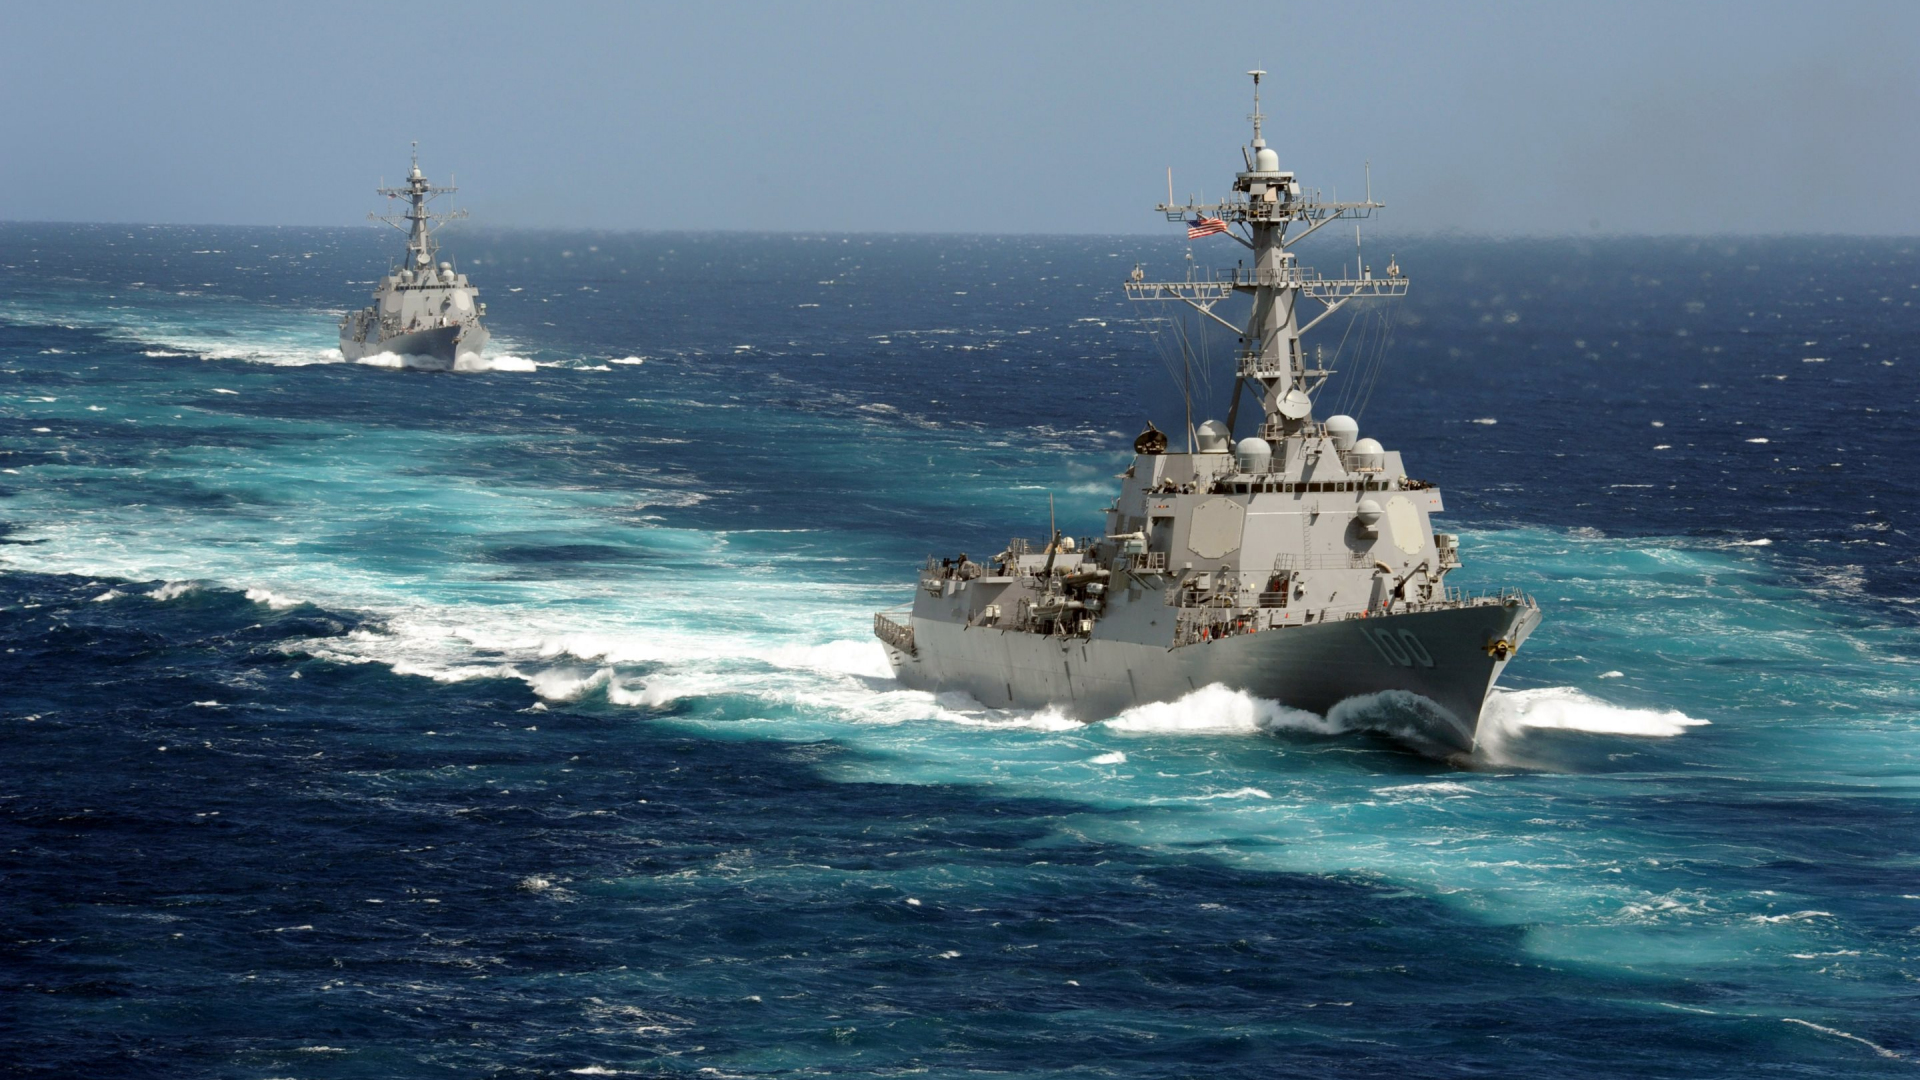 1920x1080 wallpaper Navy ships of us army